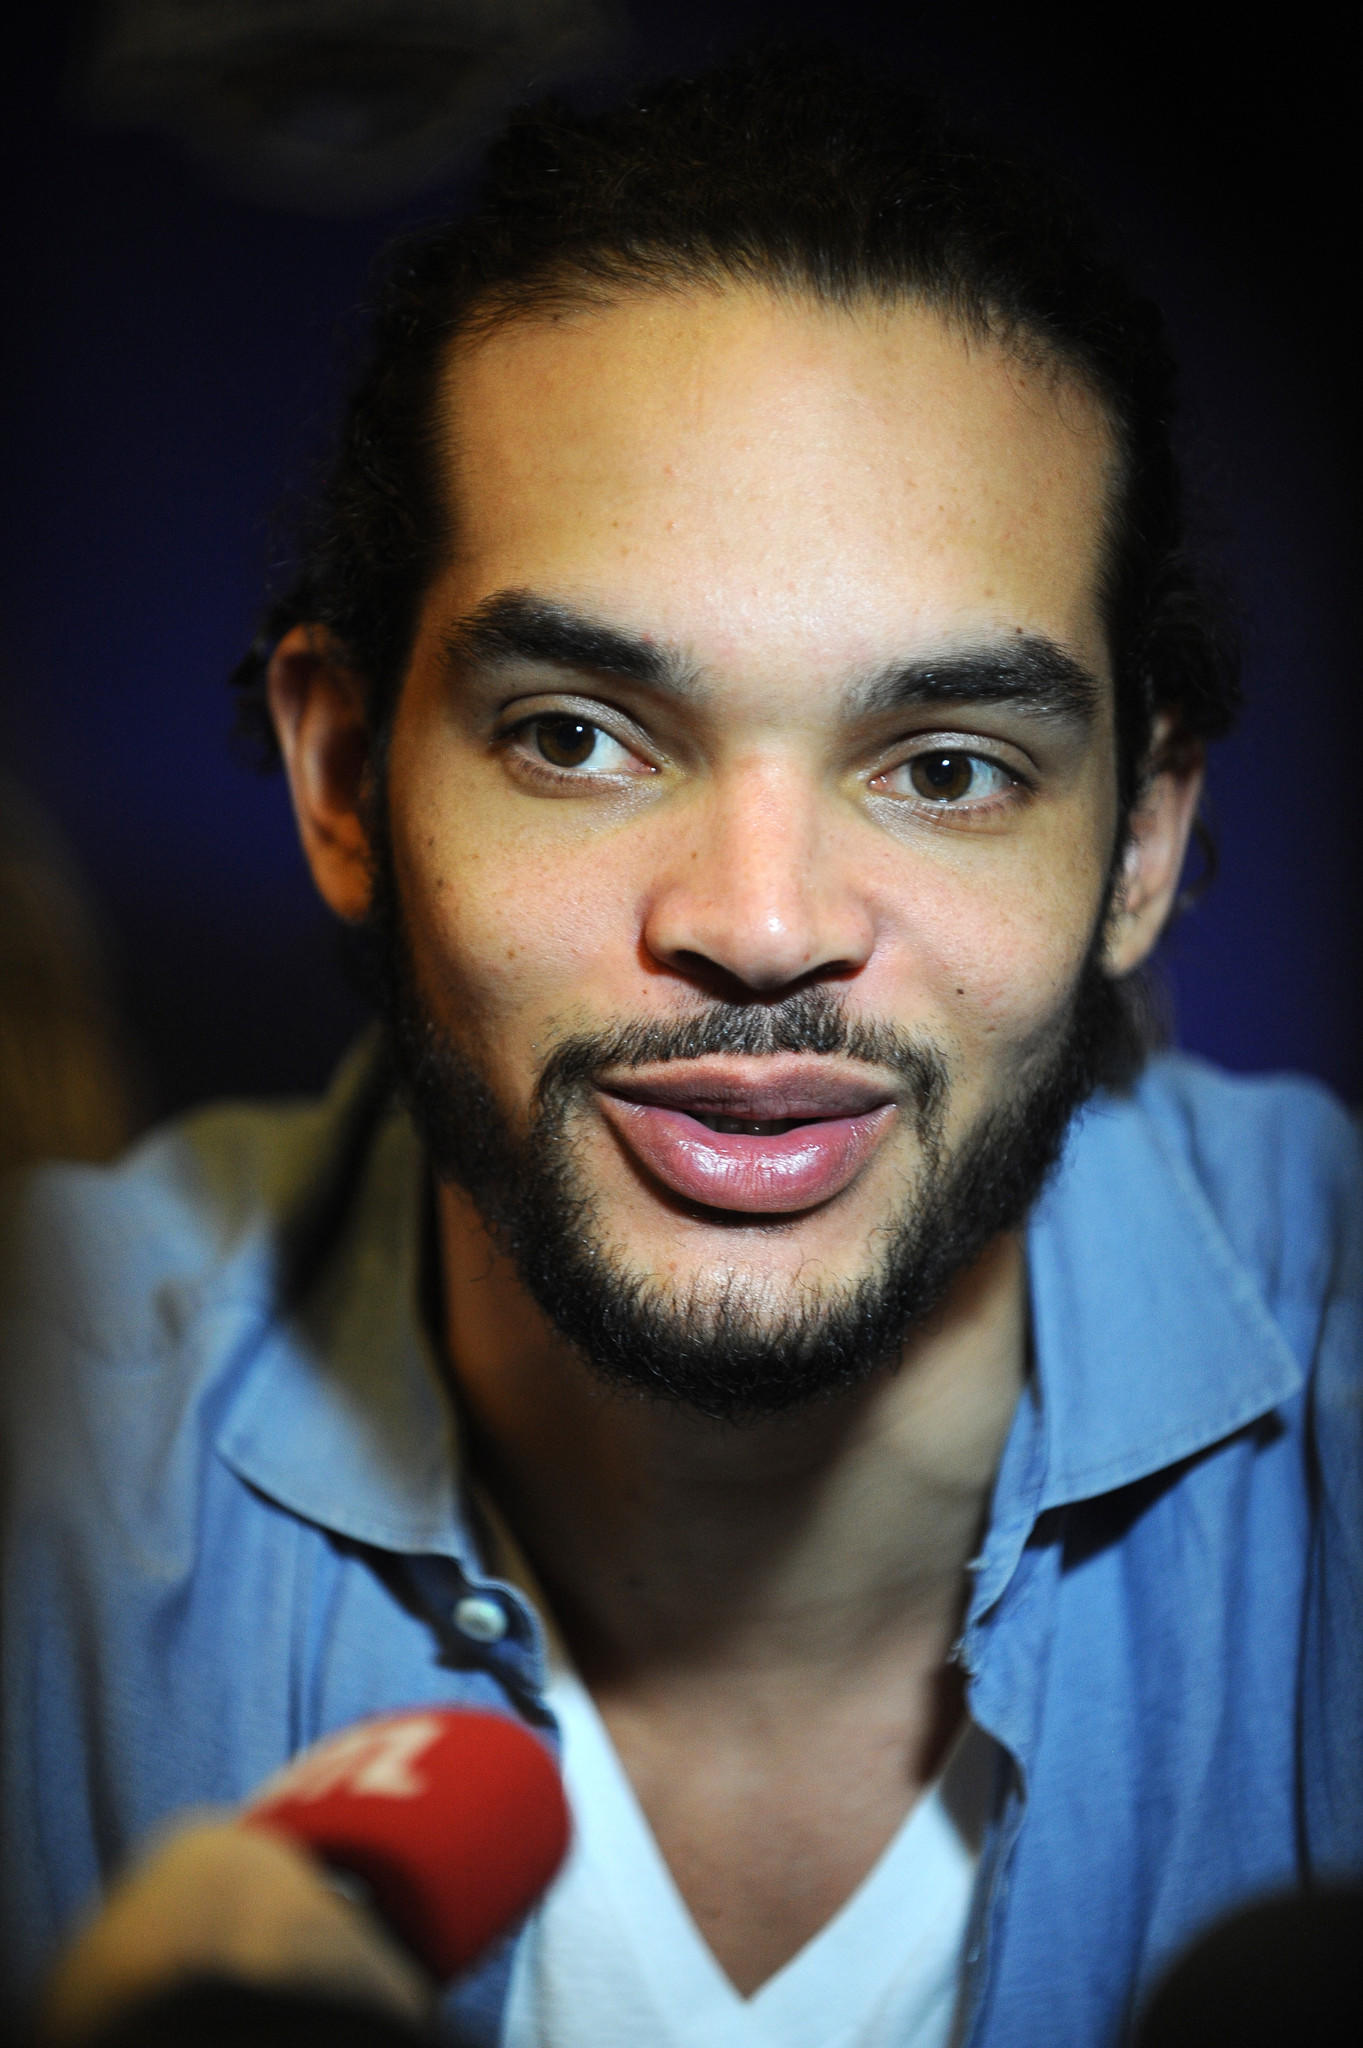 Joakim Noah answers questions during NBA All-Star Press Conferences and Media Availability as part of 2014 All-Star Weekend at the Hyatt Regency Hotel on February 14, 2014 in New Orleans, Louisiana.